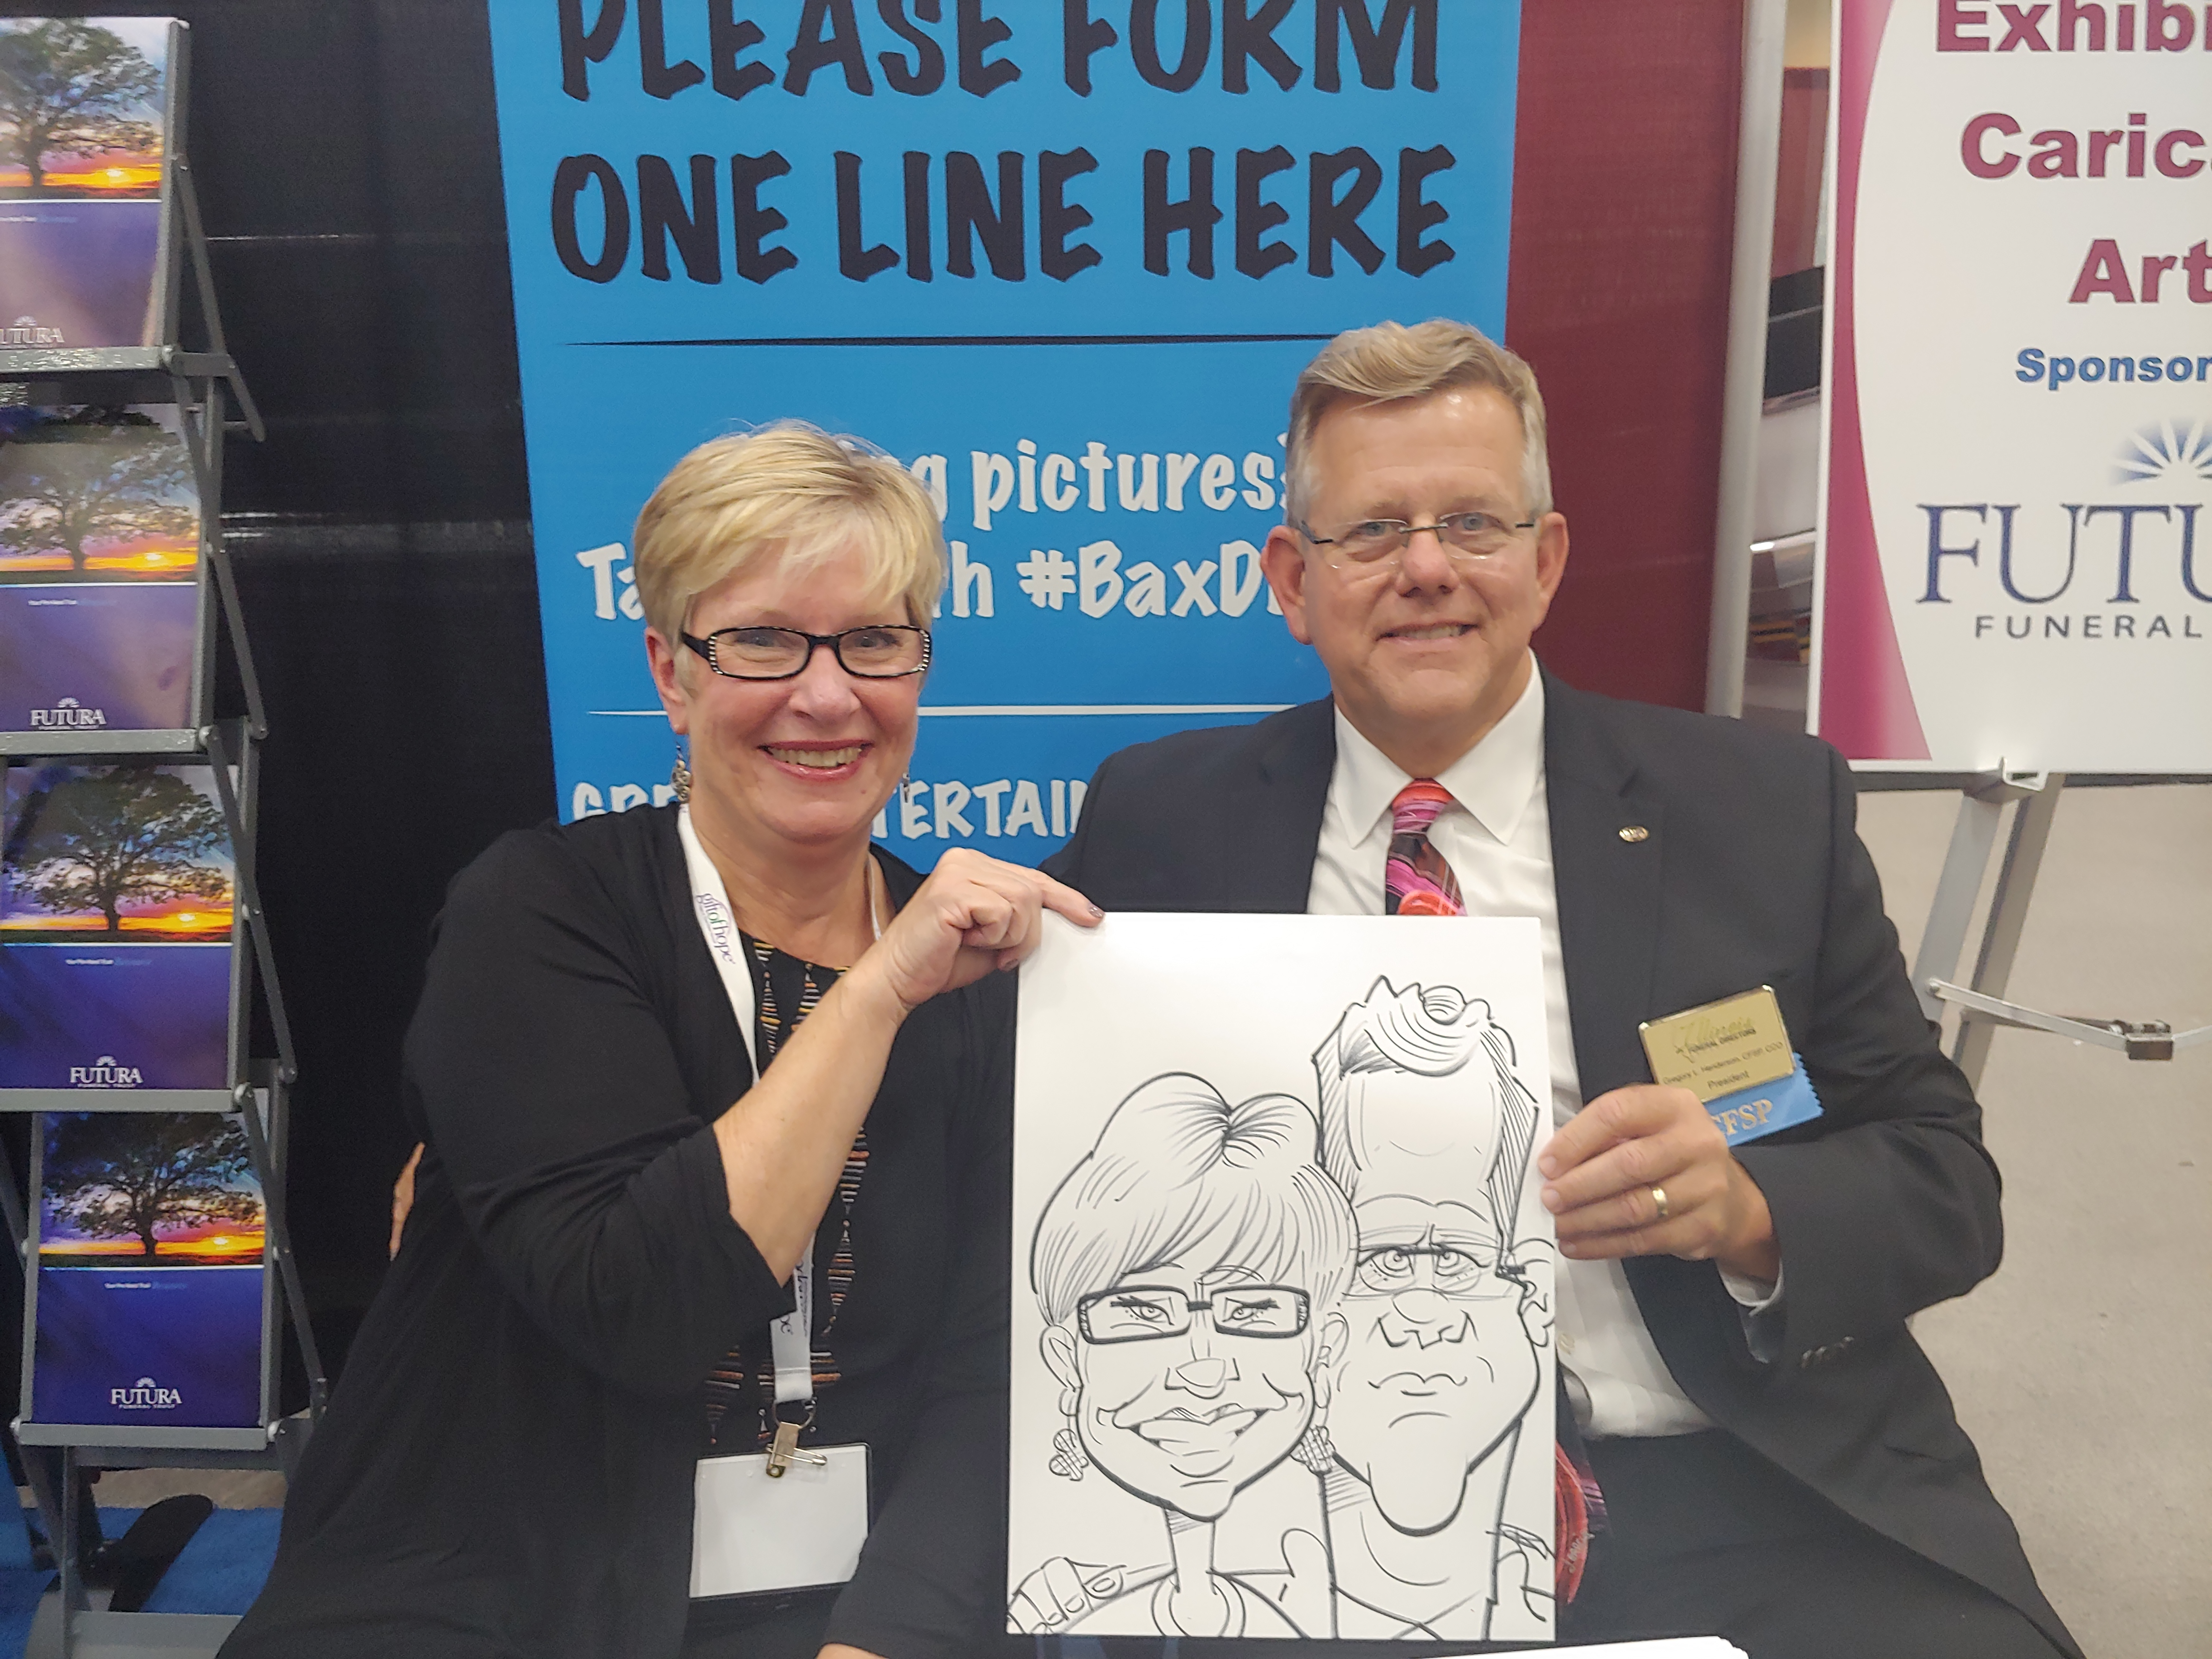 Couple holding caricature at Gateway Center Collinsville during the Illinois Funeral Directors Association Conference